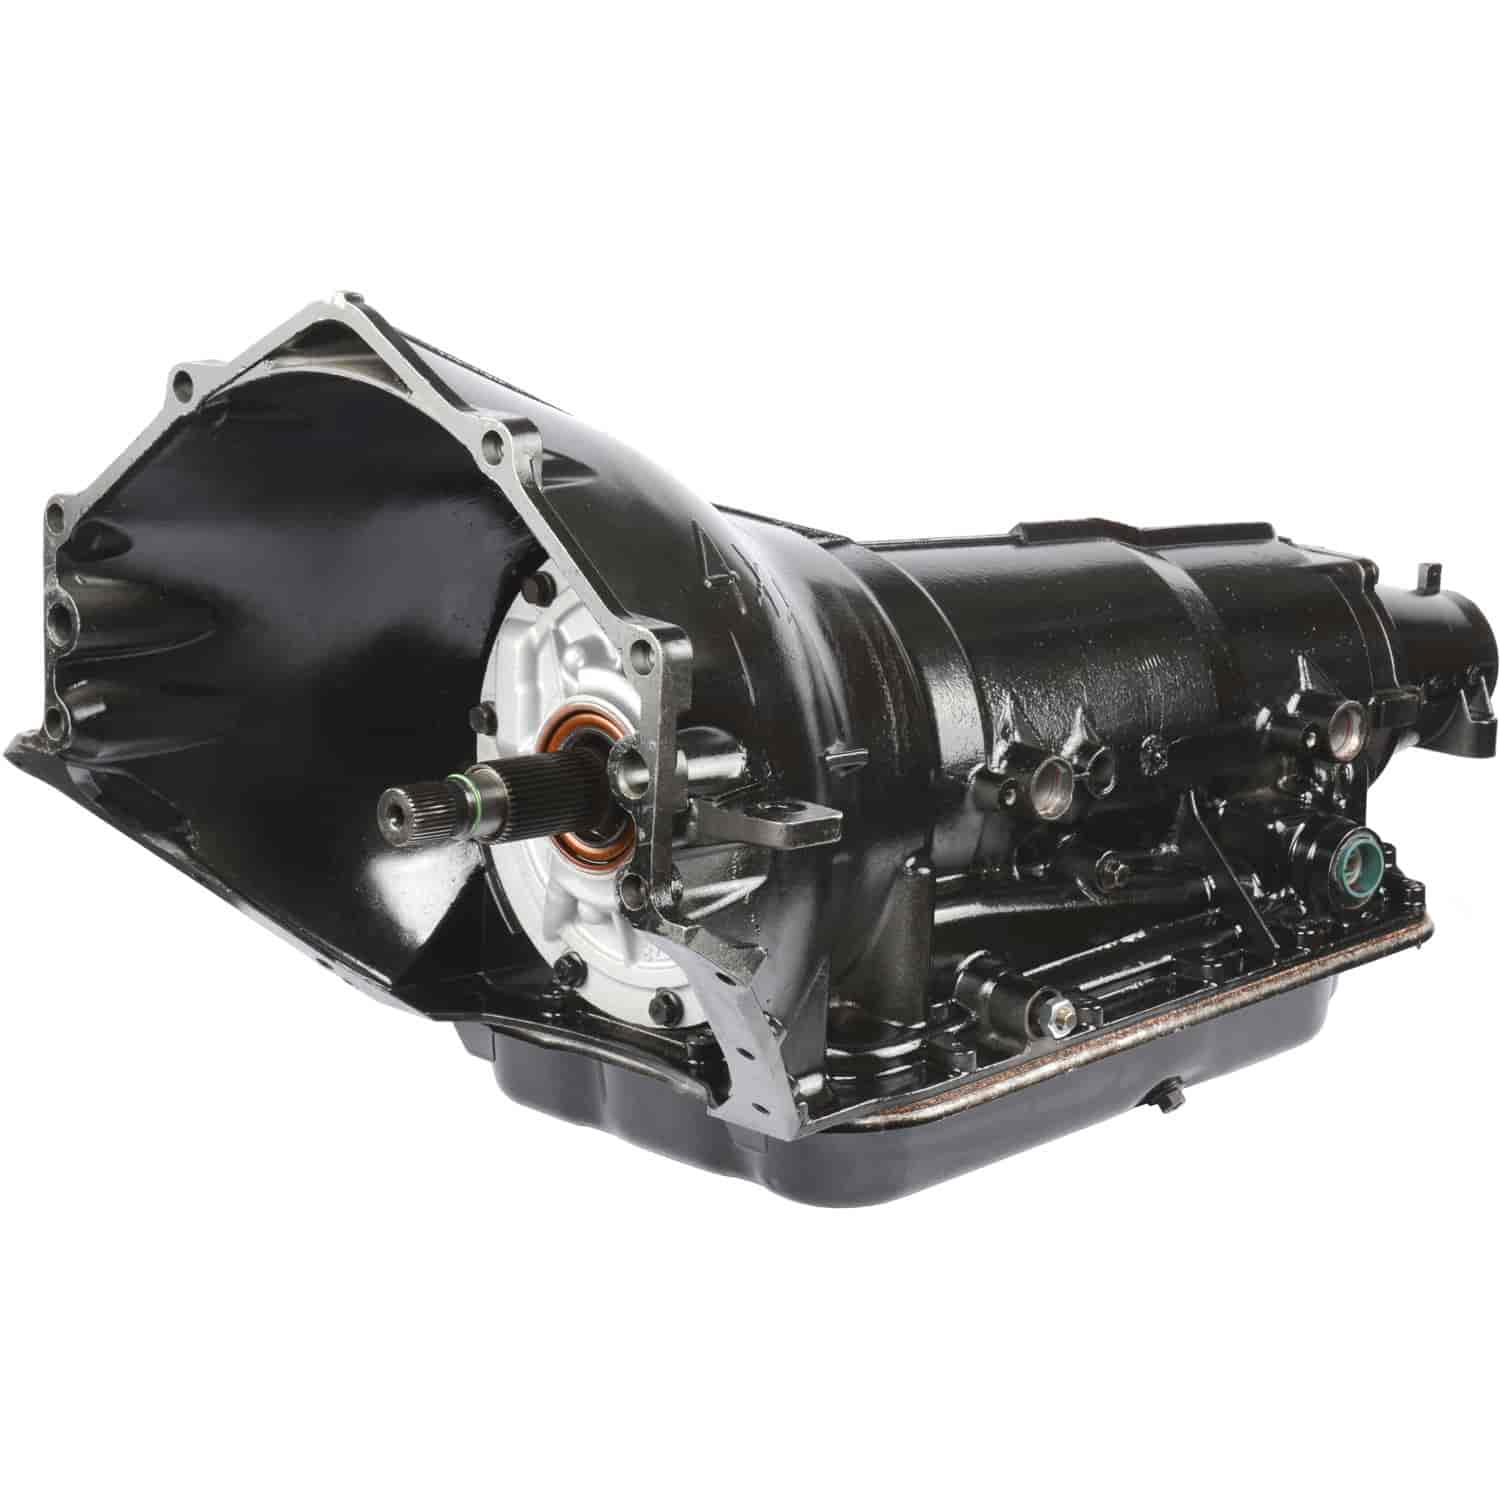 JEGS 4L80E Performance Transmission for 1991-1996, Chevy 2WD